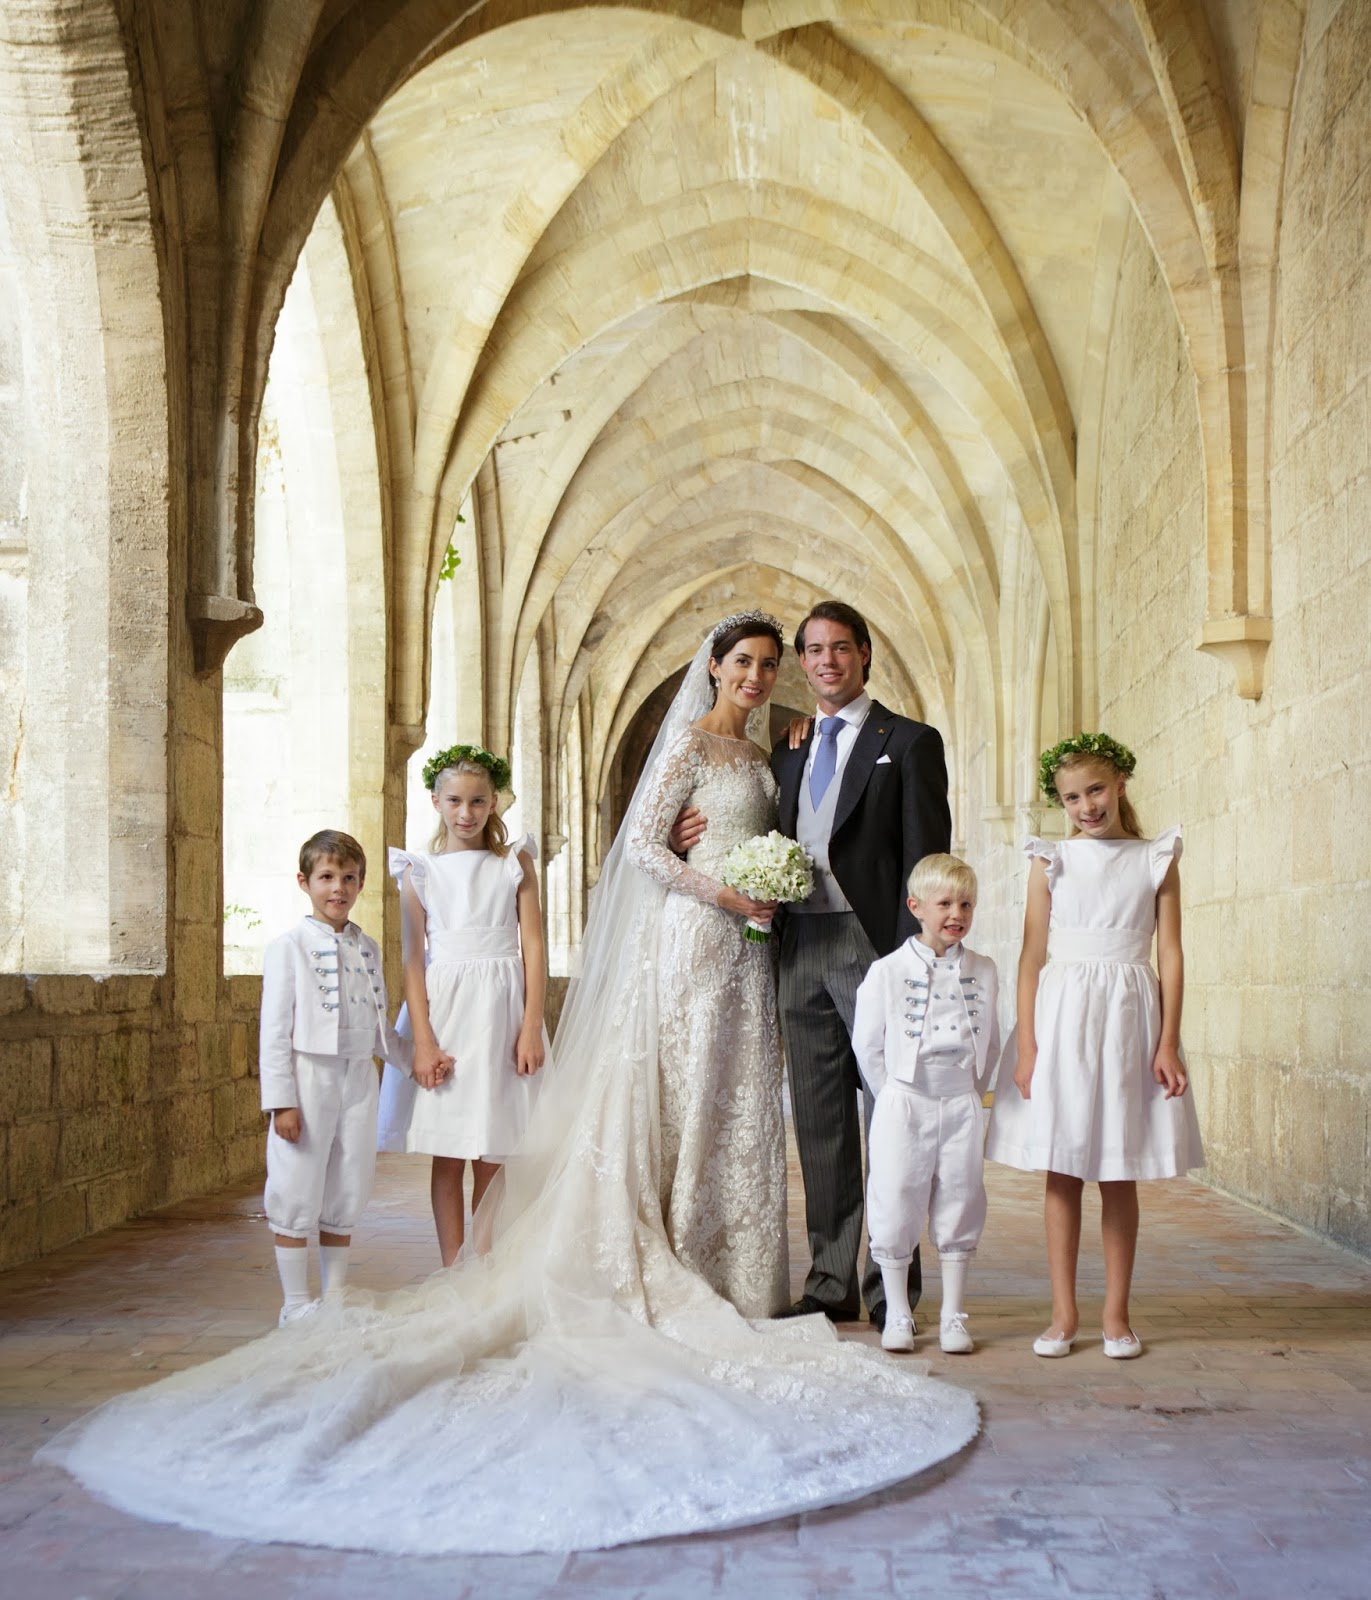 Family Picture Ideas For Wedding: BRIDE CHIC: A ROYAL WEDDING